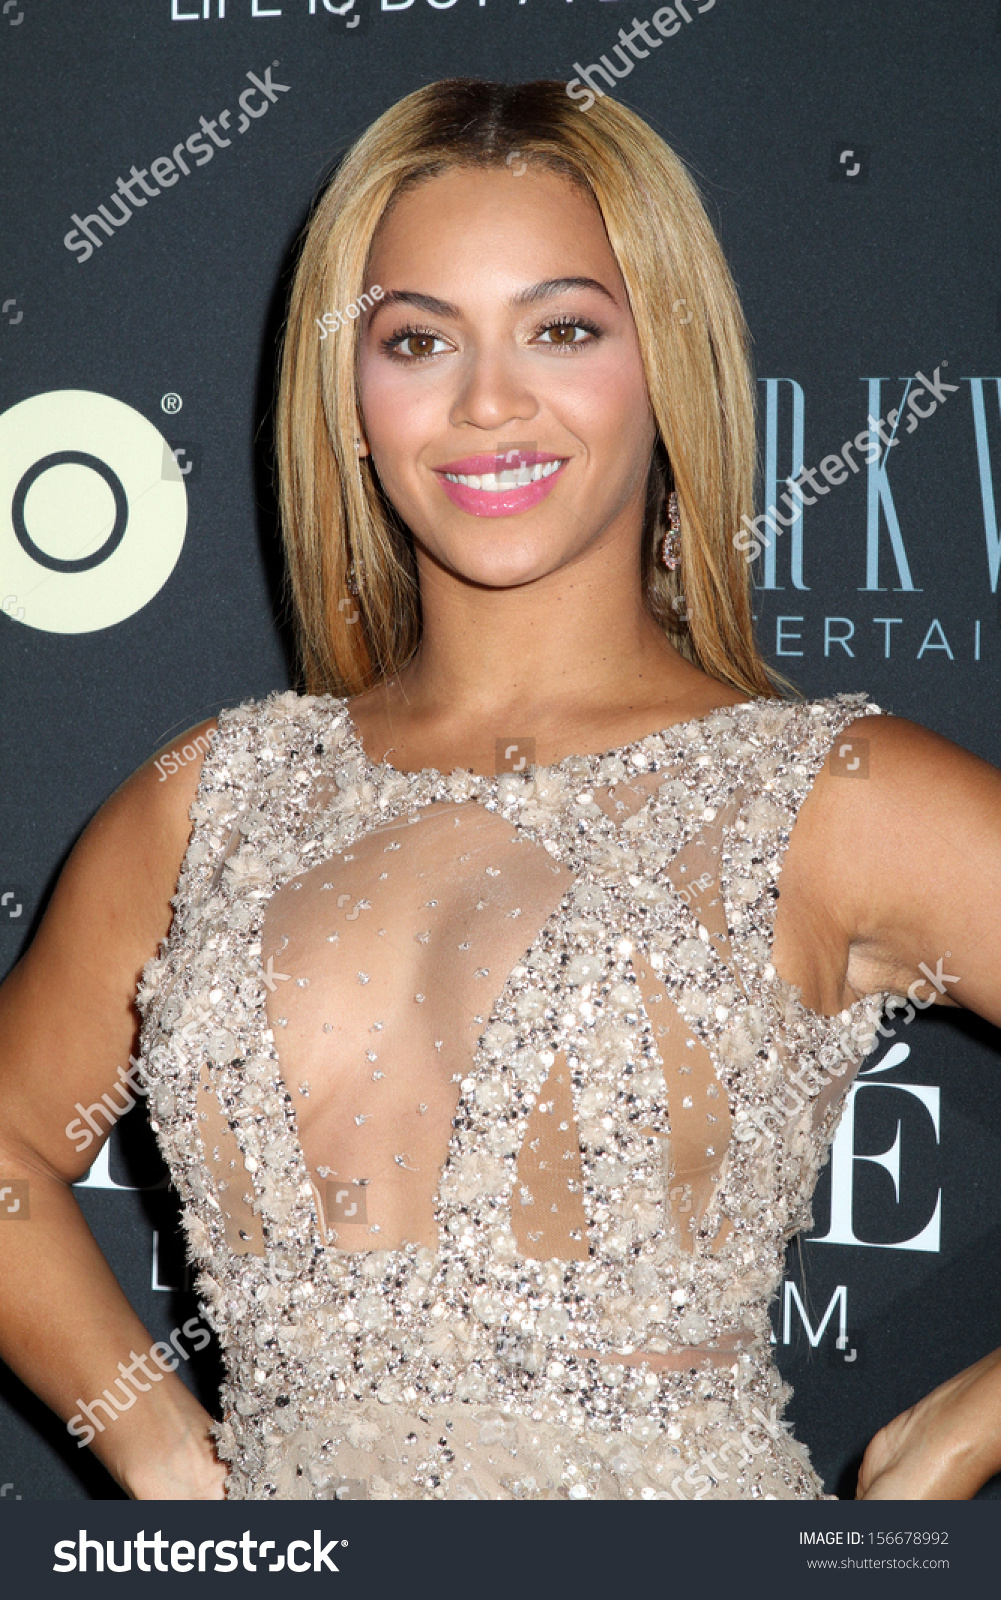 the life of beyonce knowles The biography of beyonce knowles: beyonce knowles' life story, hardships, and her rise to stardom (biographies of famous people series) ebook: steve walters: amazoncomau: kindle store.